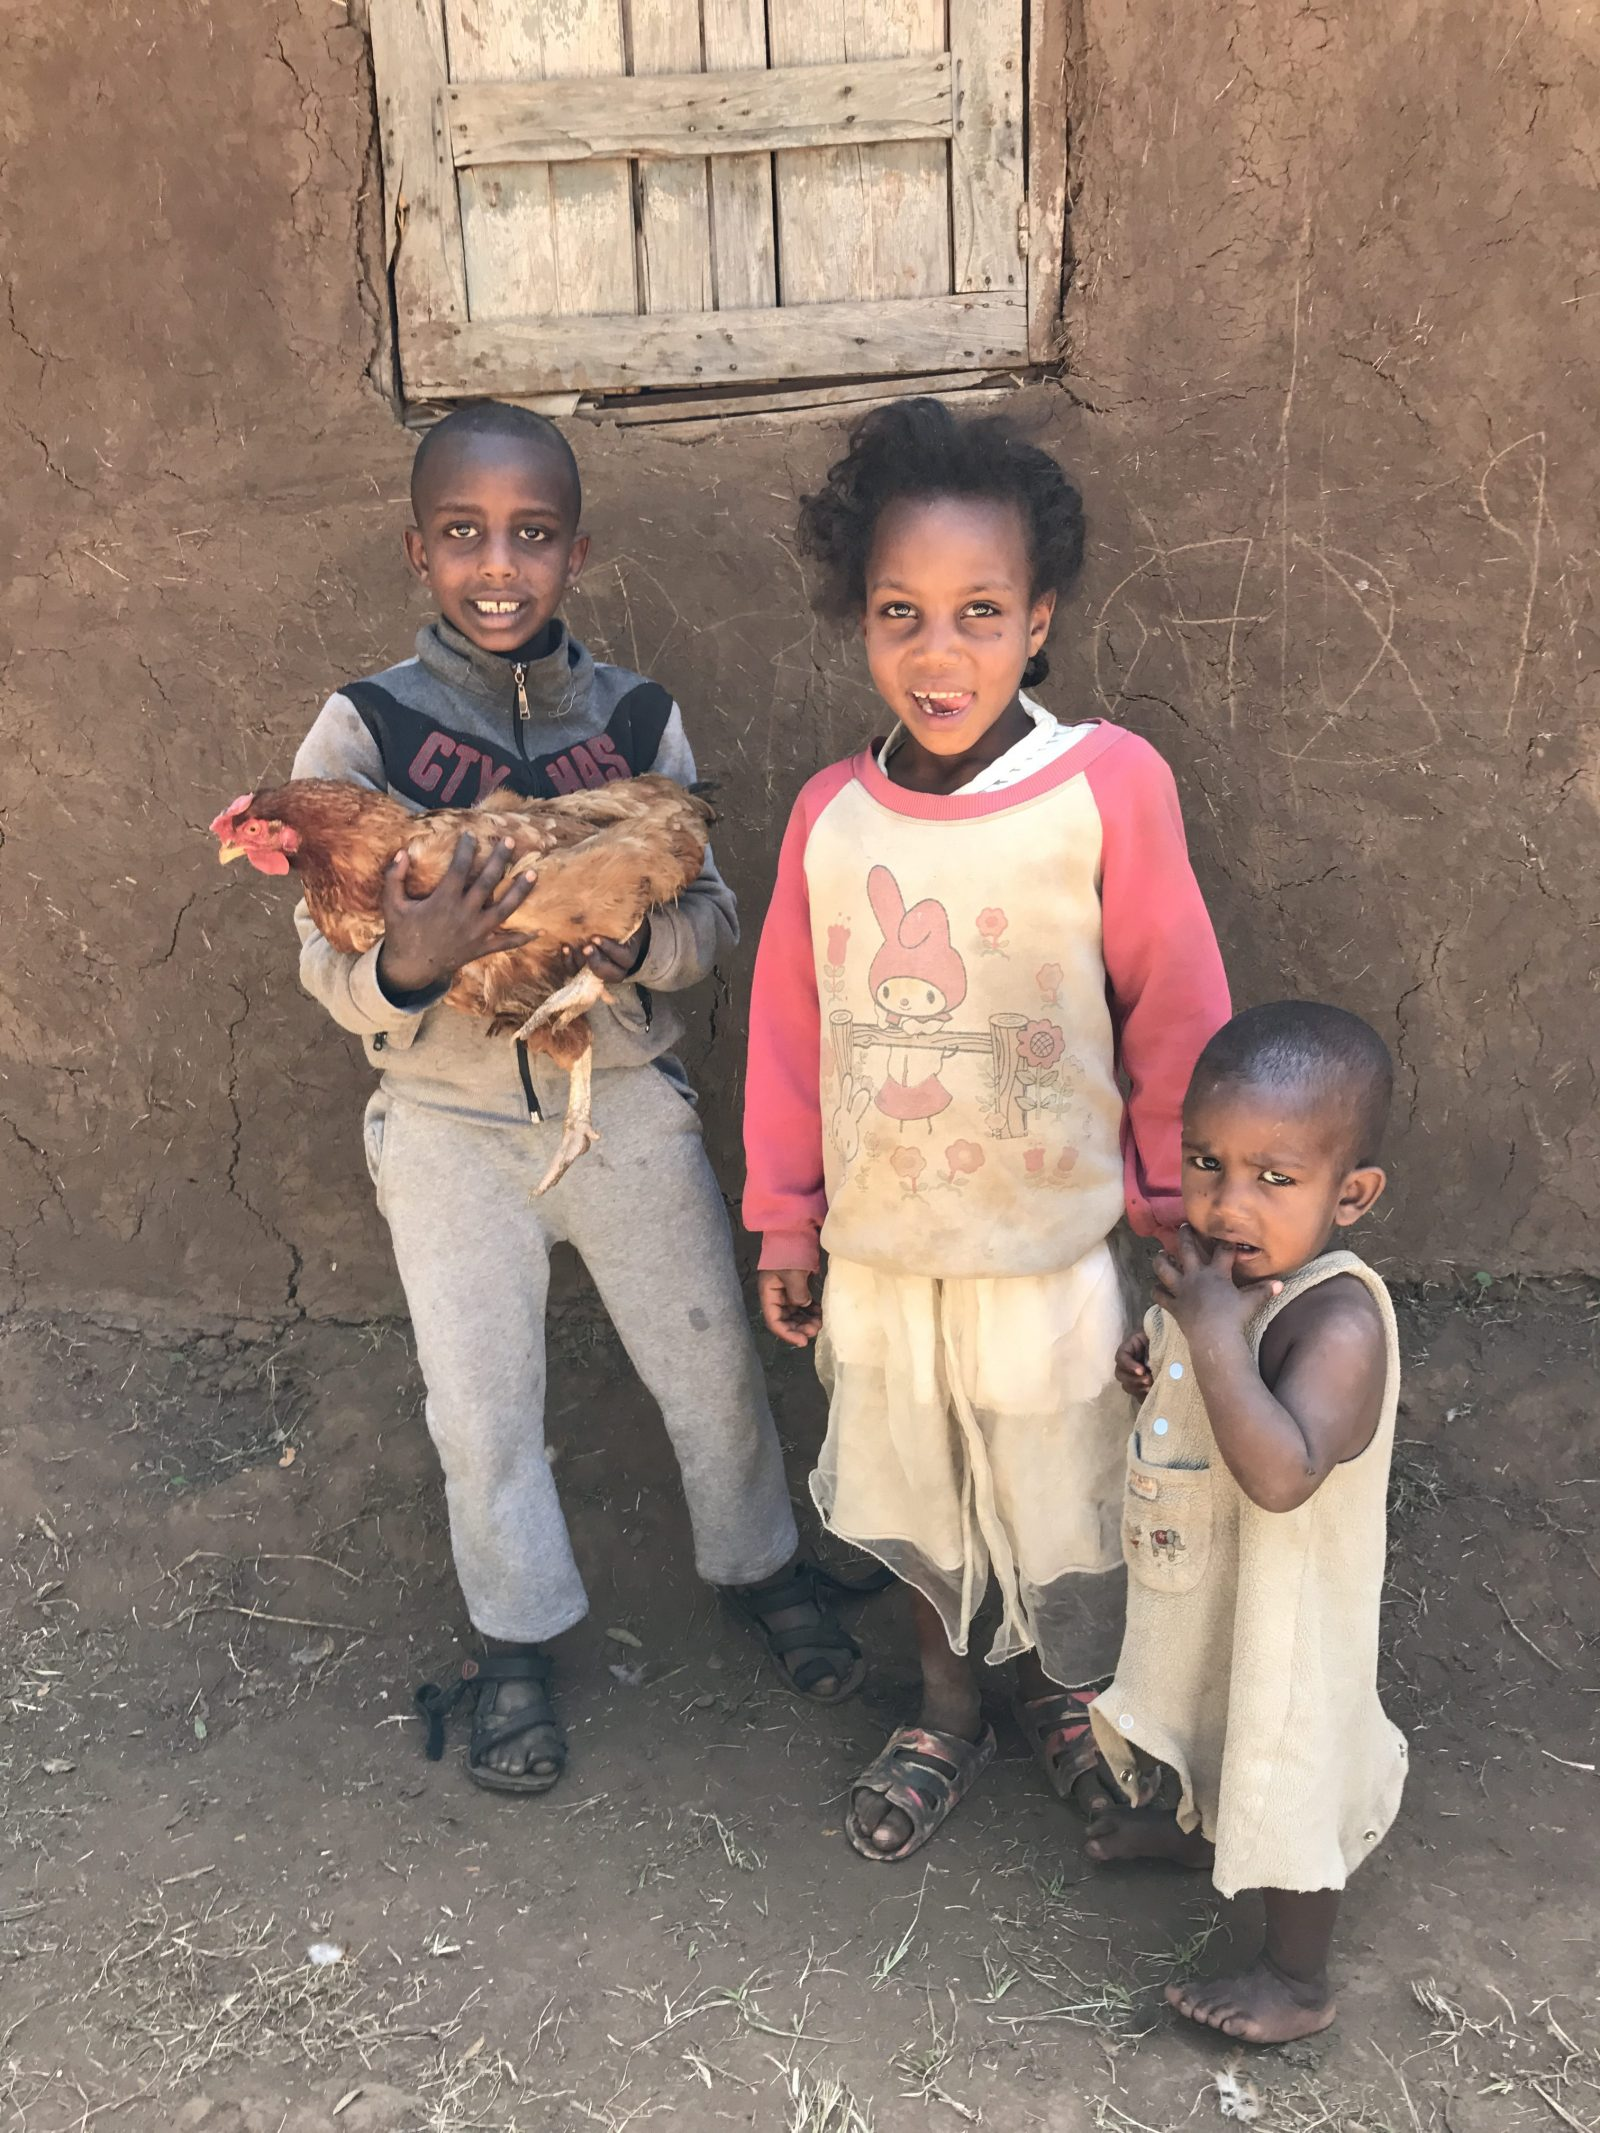 Betsega: A Boy's Day in Ethiopia